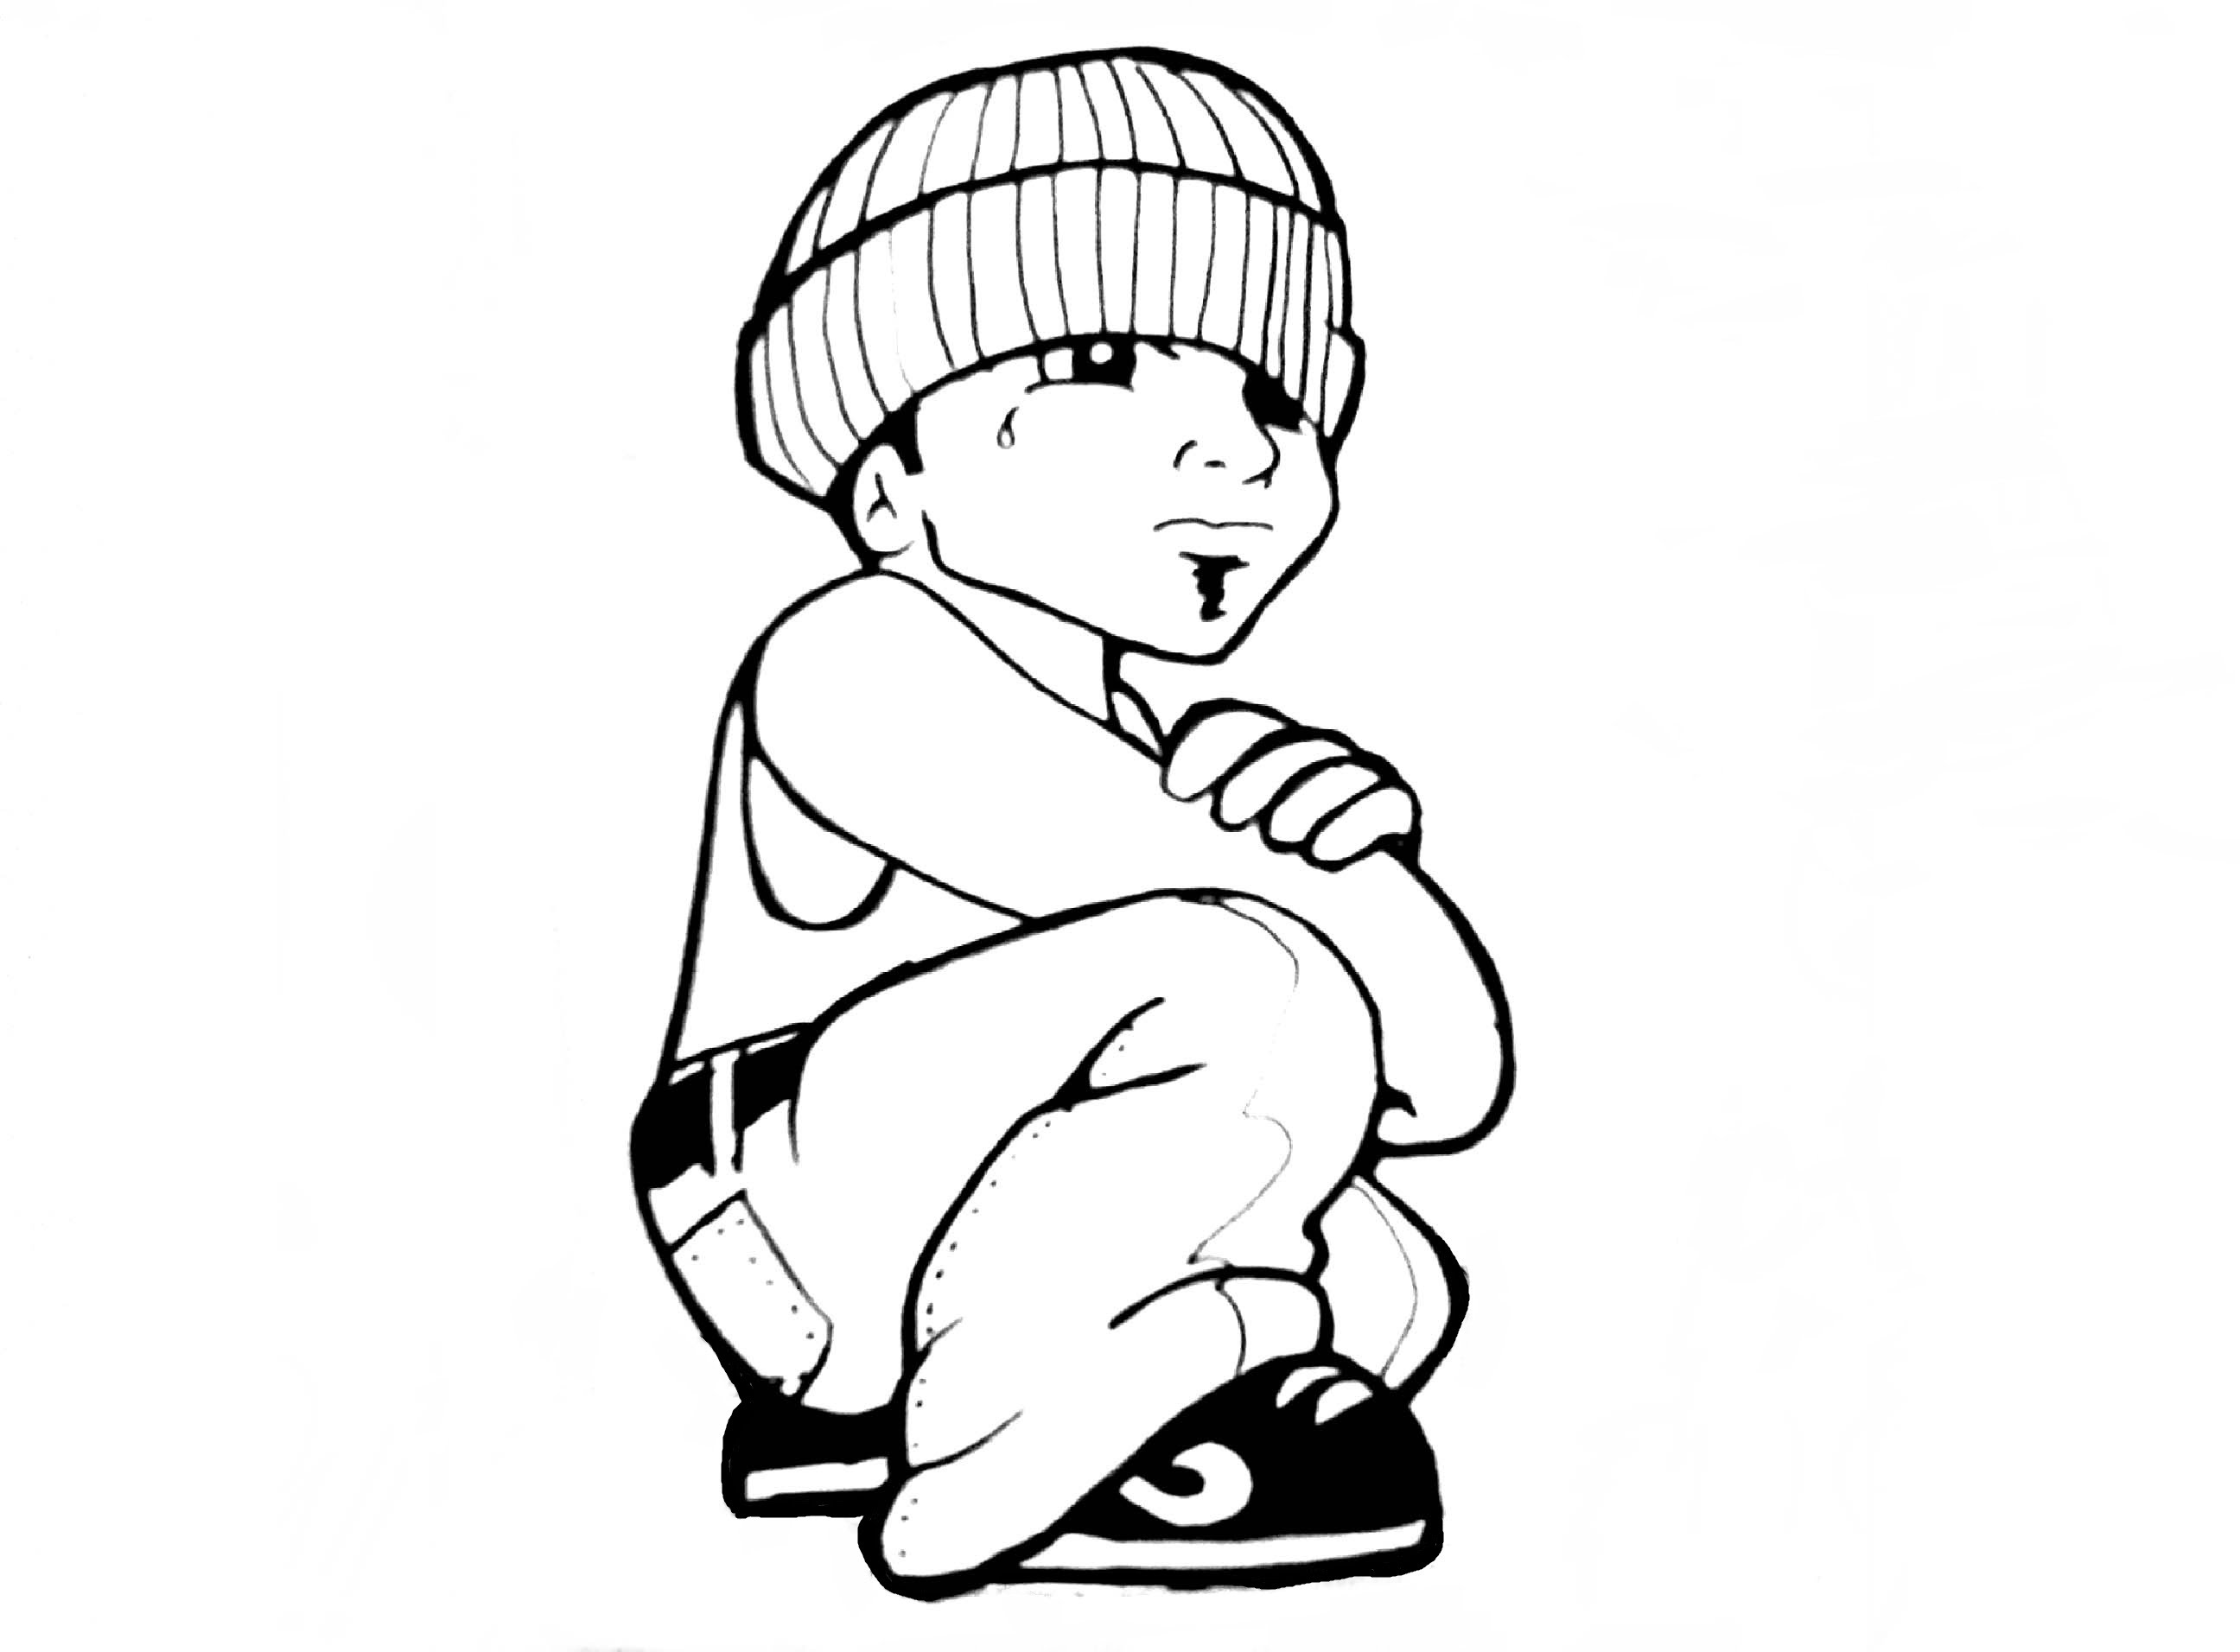 2592x1912 How To Draw A Cholo 2 By Wizard